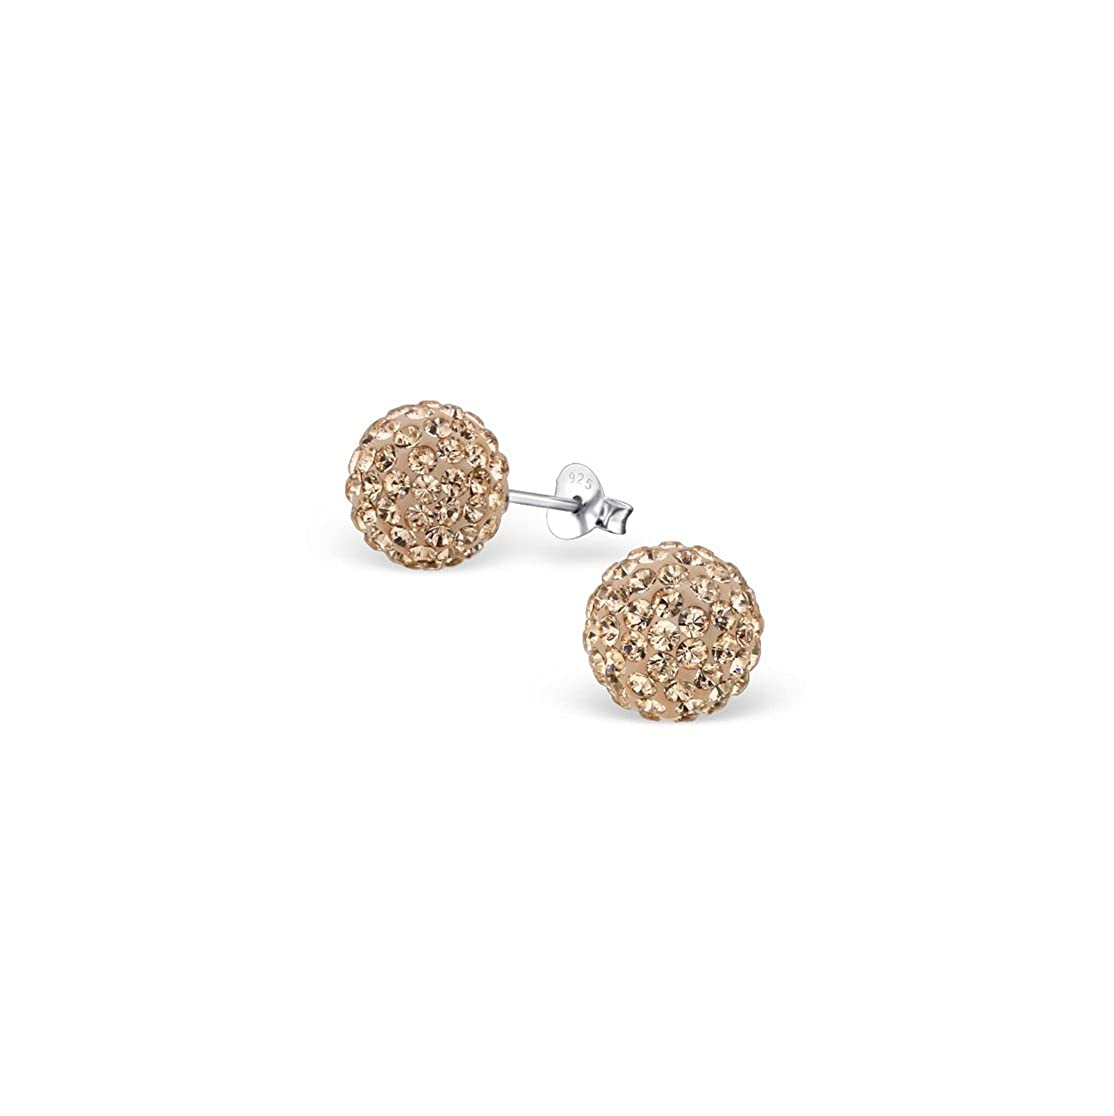 Ball Ear Studs With Crystal Sterling Silver 925 Liara Polished And Nickel Free